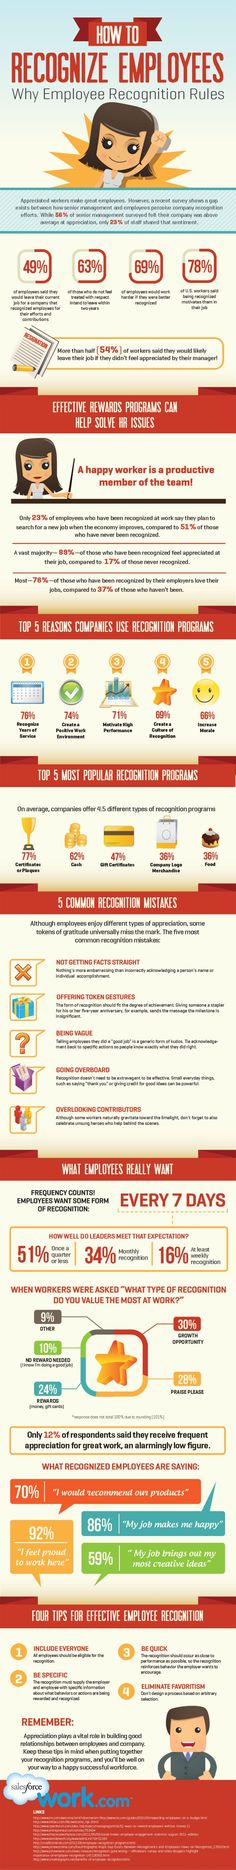 InfoGraphic:  Why Employee Recognition Rules: How to recognize employees